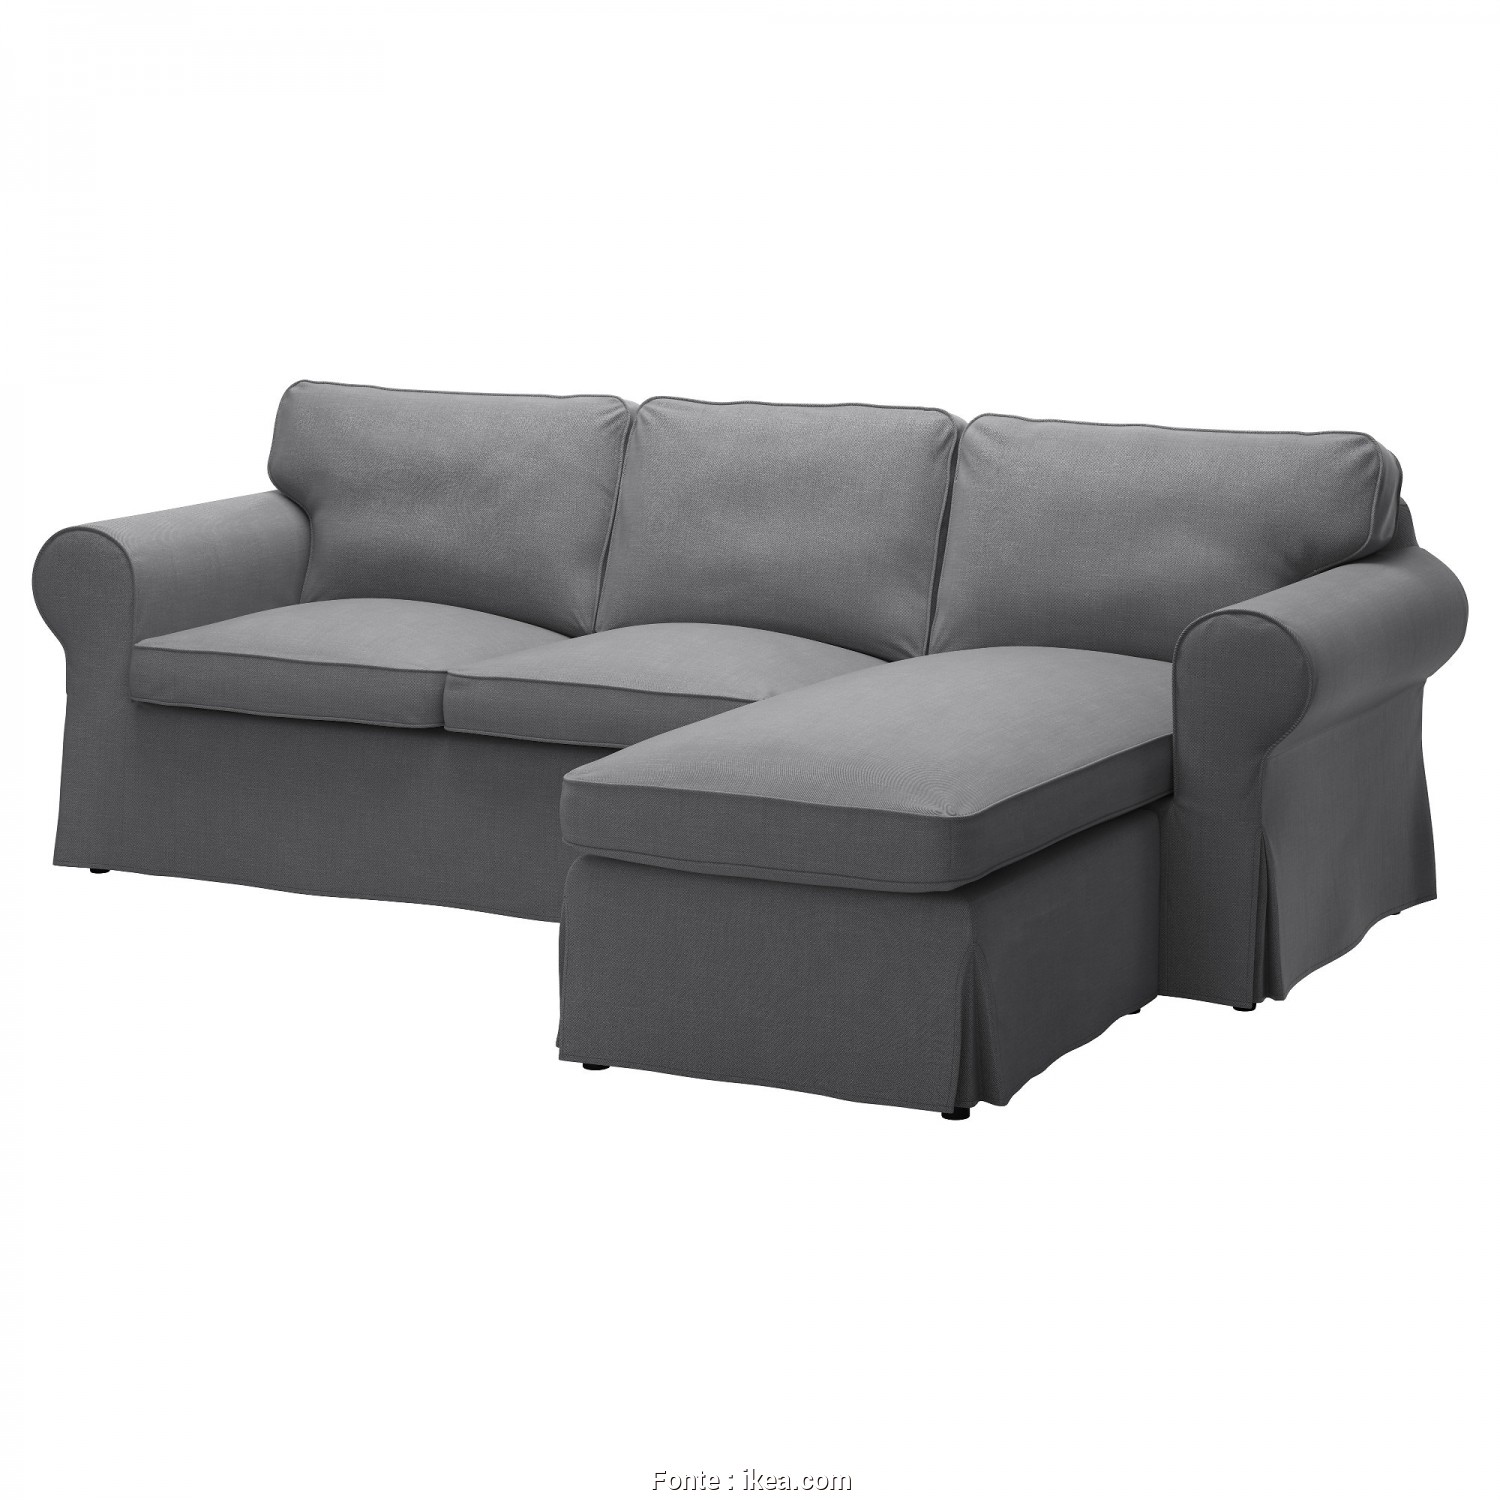 Ikea Klippan 3 Seater Sofa Dimensions, Amabile IKEA EKTORP 3-Seat Sofa 10 Year Guarantee. Read About, Terms In The